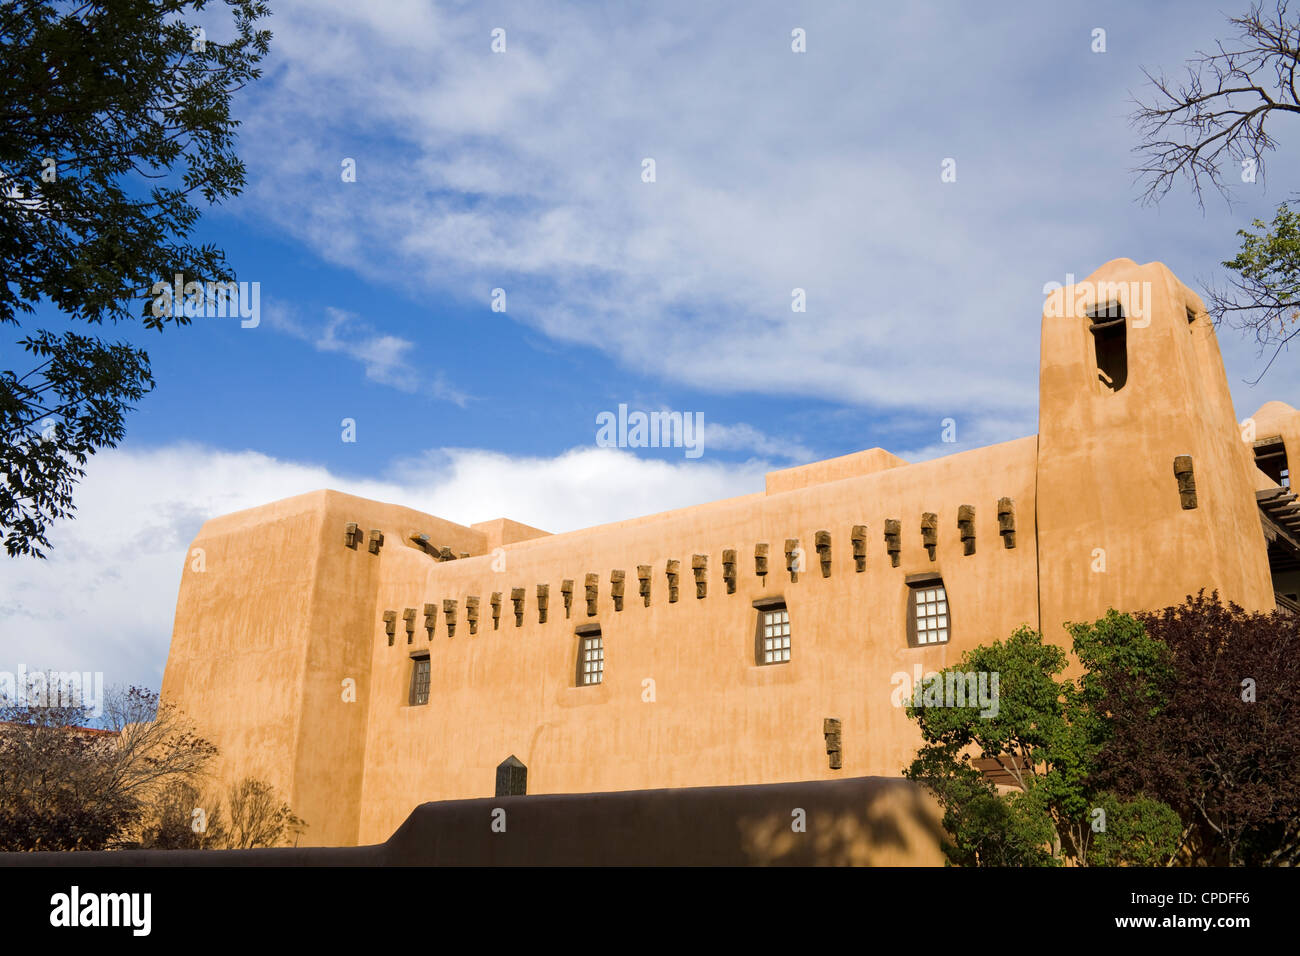 New Mexico Museum of Art, Santa Fe, New Mexico, United States of America, North America - Stock Image